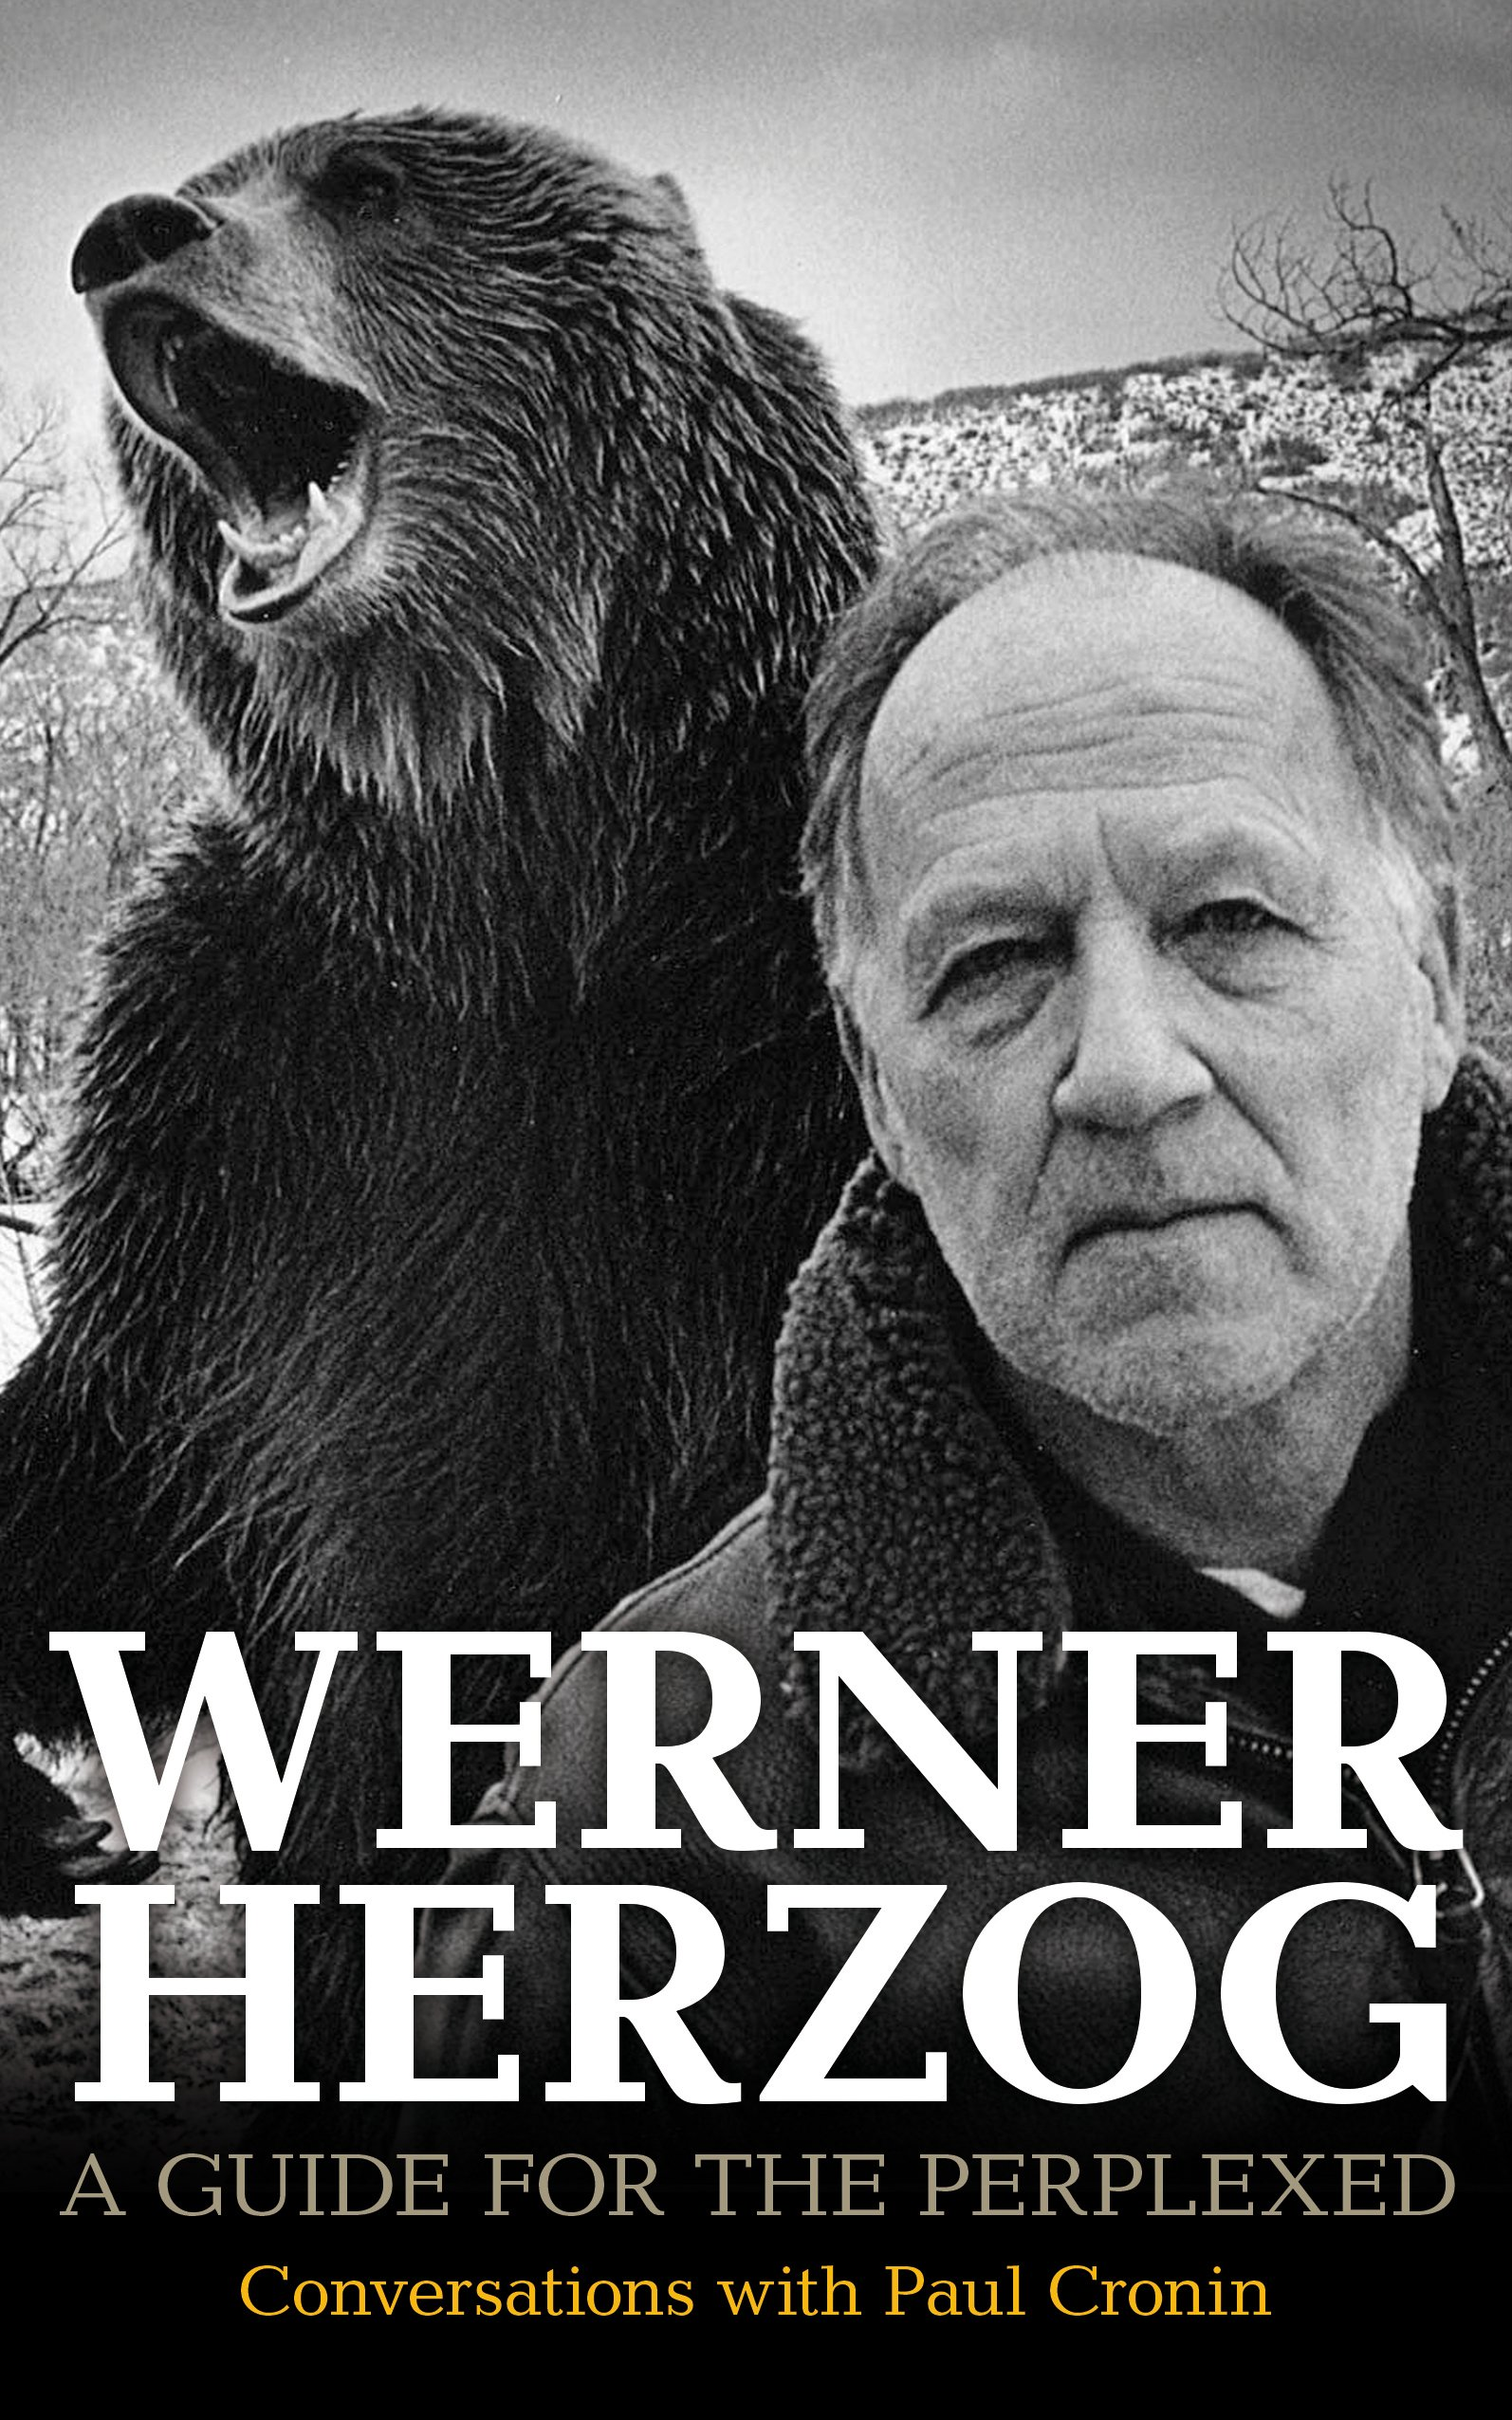 werner herzog a guide for the perplexed werner herzog paul rh amazon com Moreh Nevuchim The Guide House